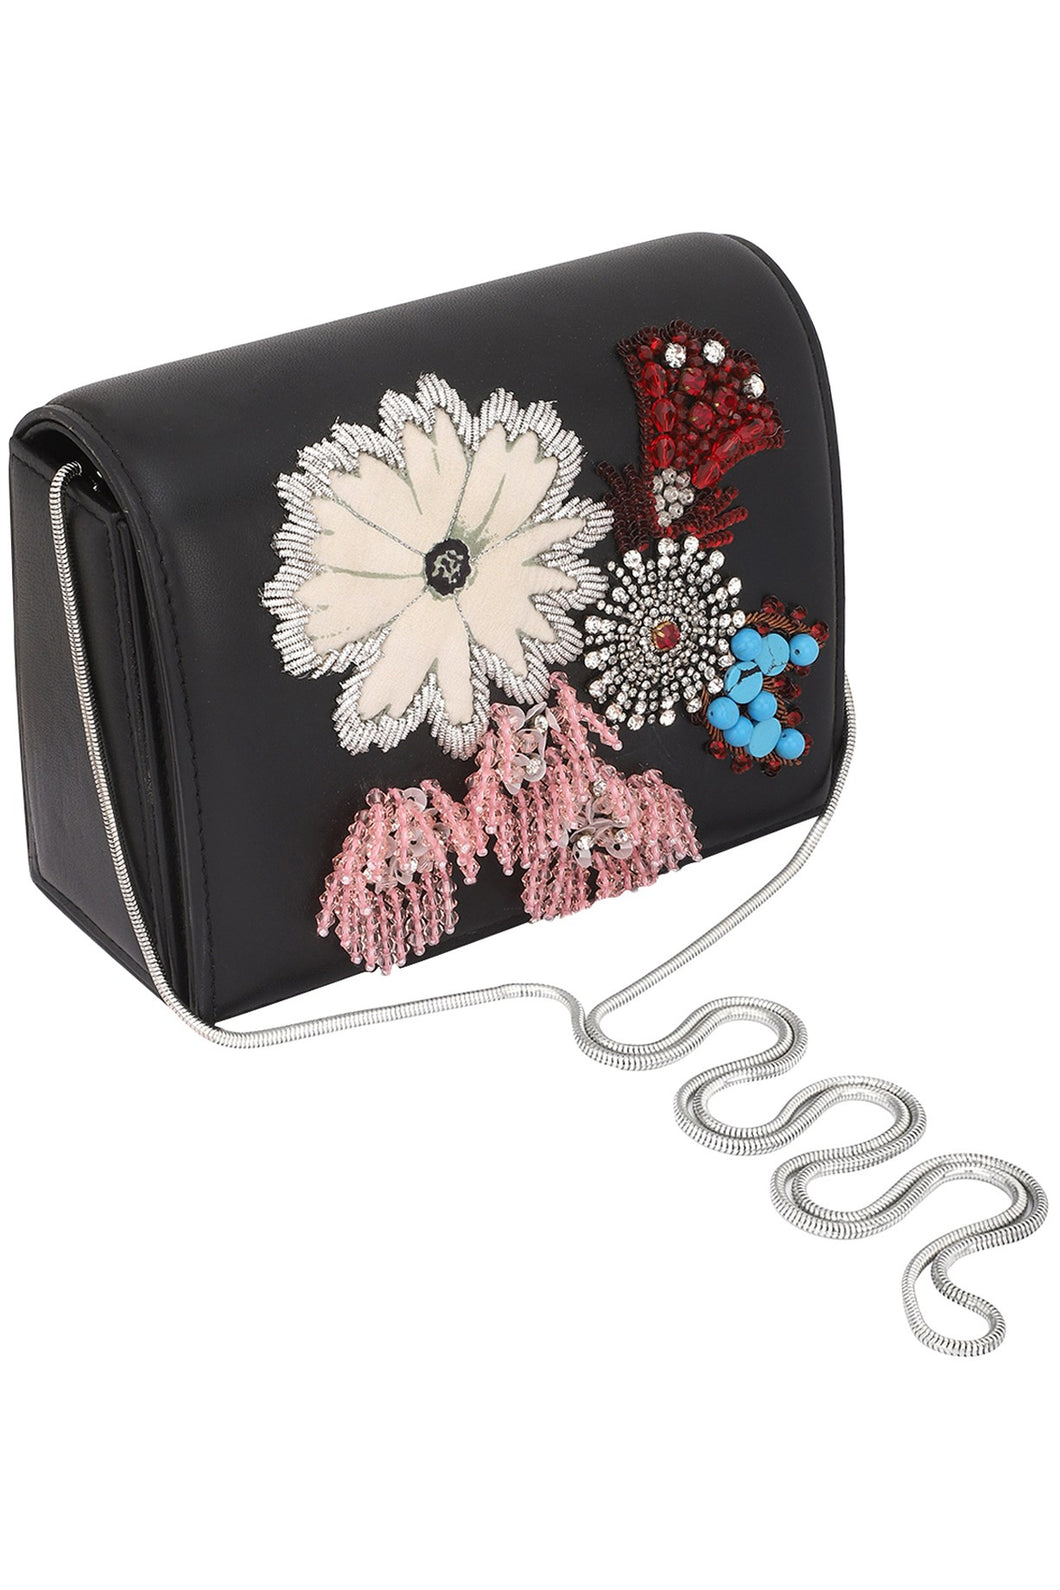 bc75b9ec62 ... Studio Accessories Black base Multicolor floral Hand beaded leather clutch  bag ...